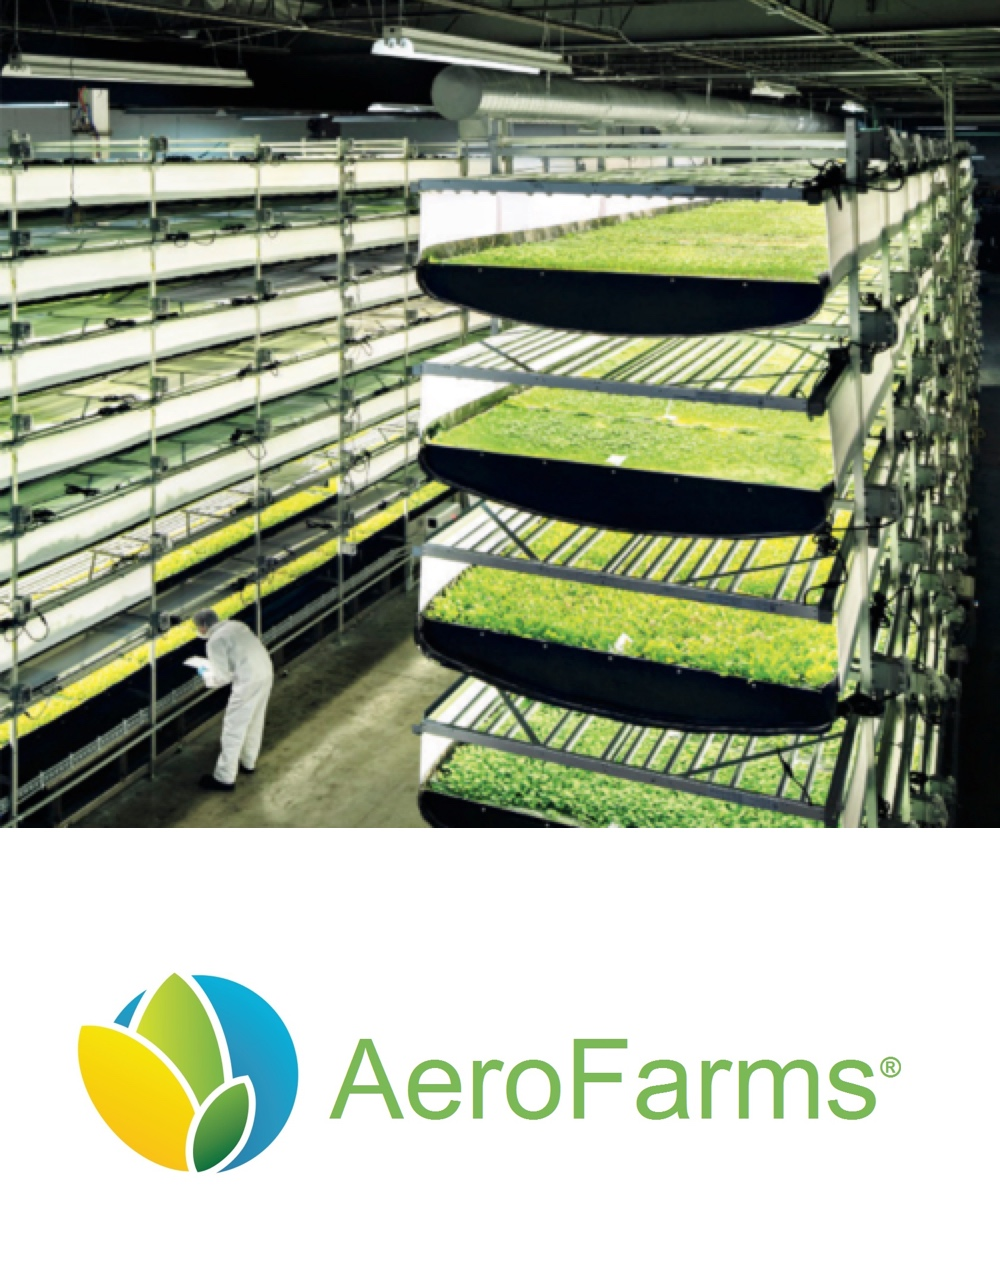 AeroFarms builds and operates environmentally responsible farms throughout the world to enable local production at scale and nourish our communities with safe, nutritious, and delicious food. -